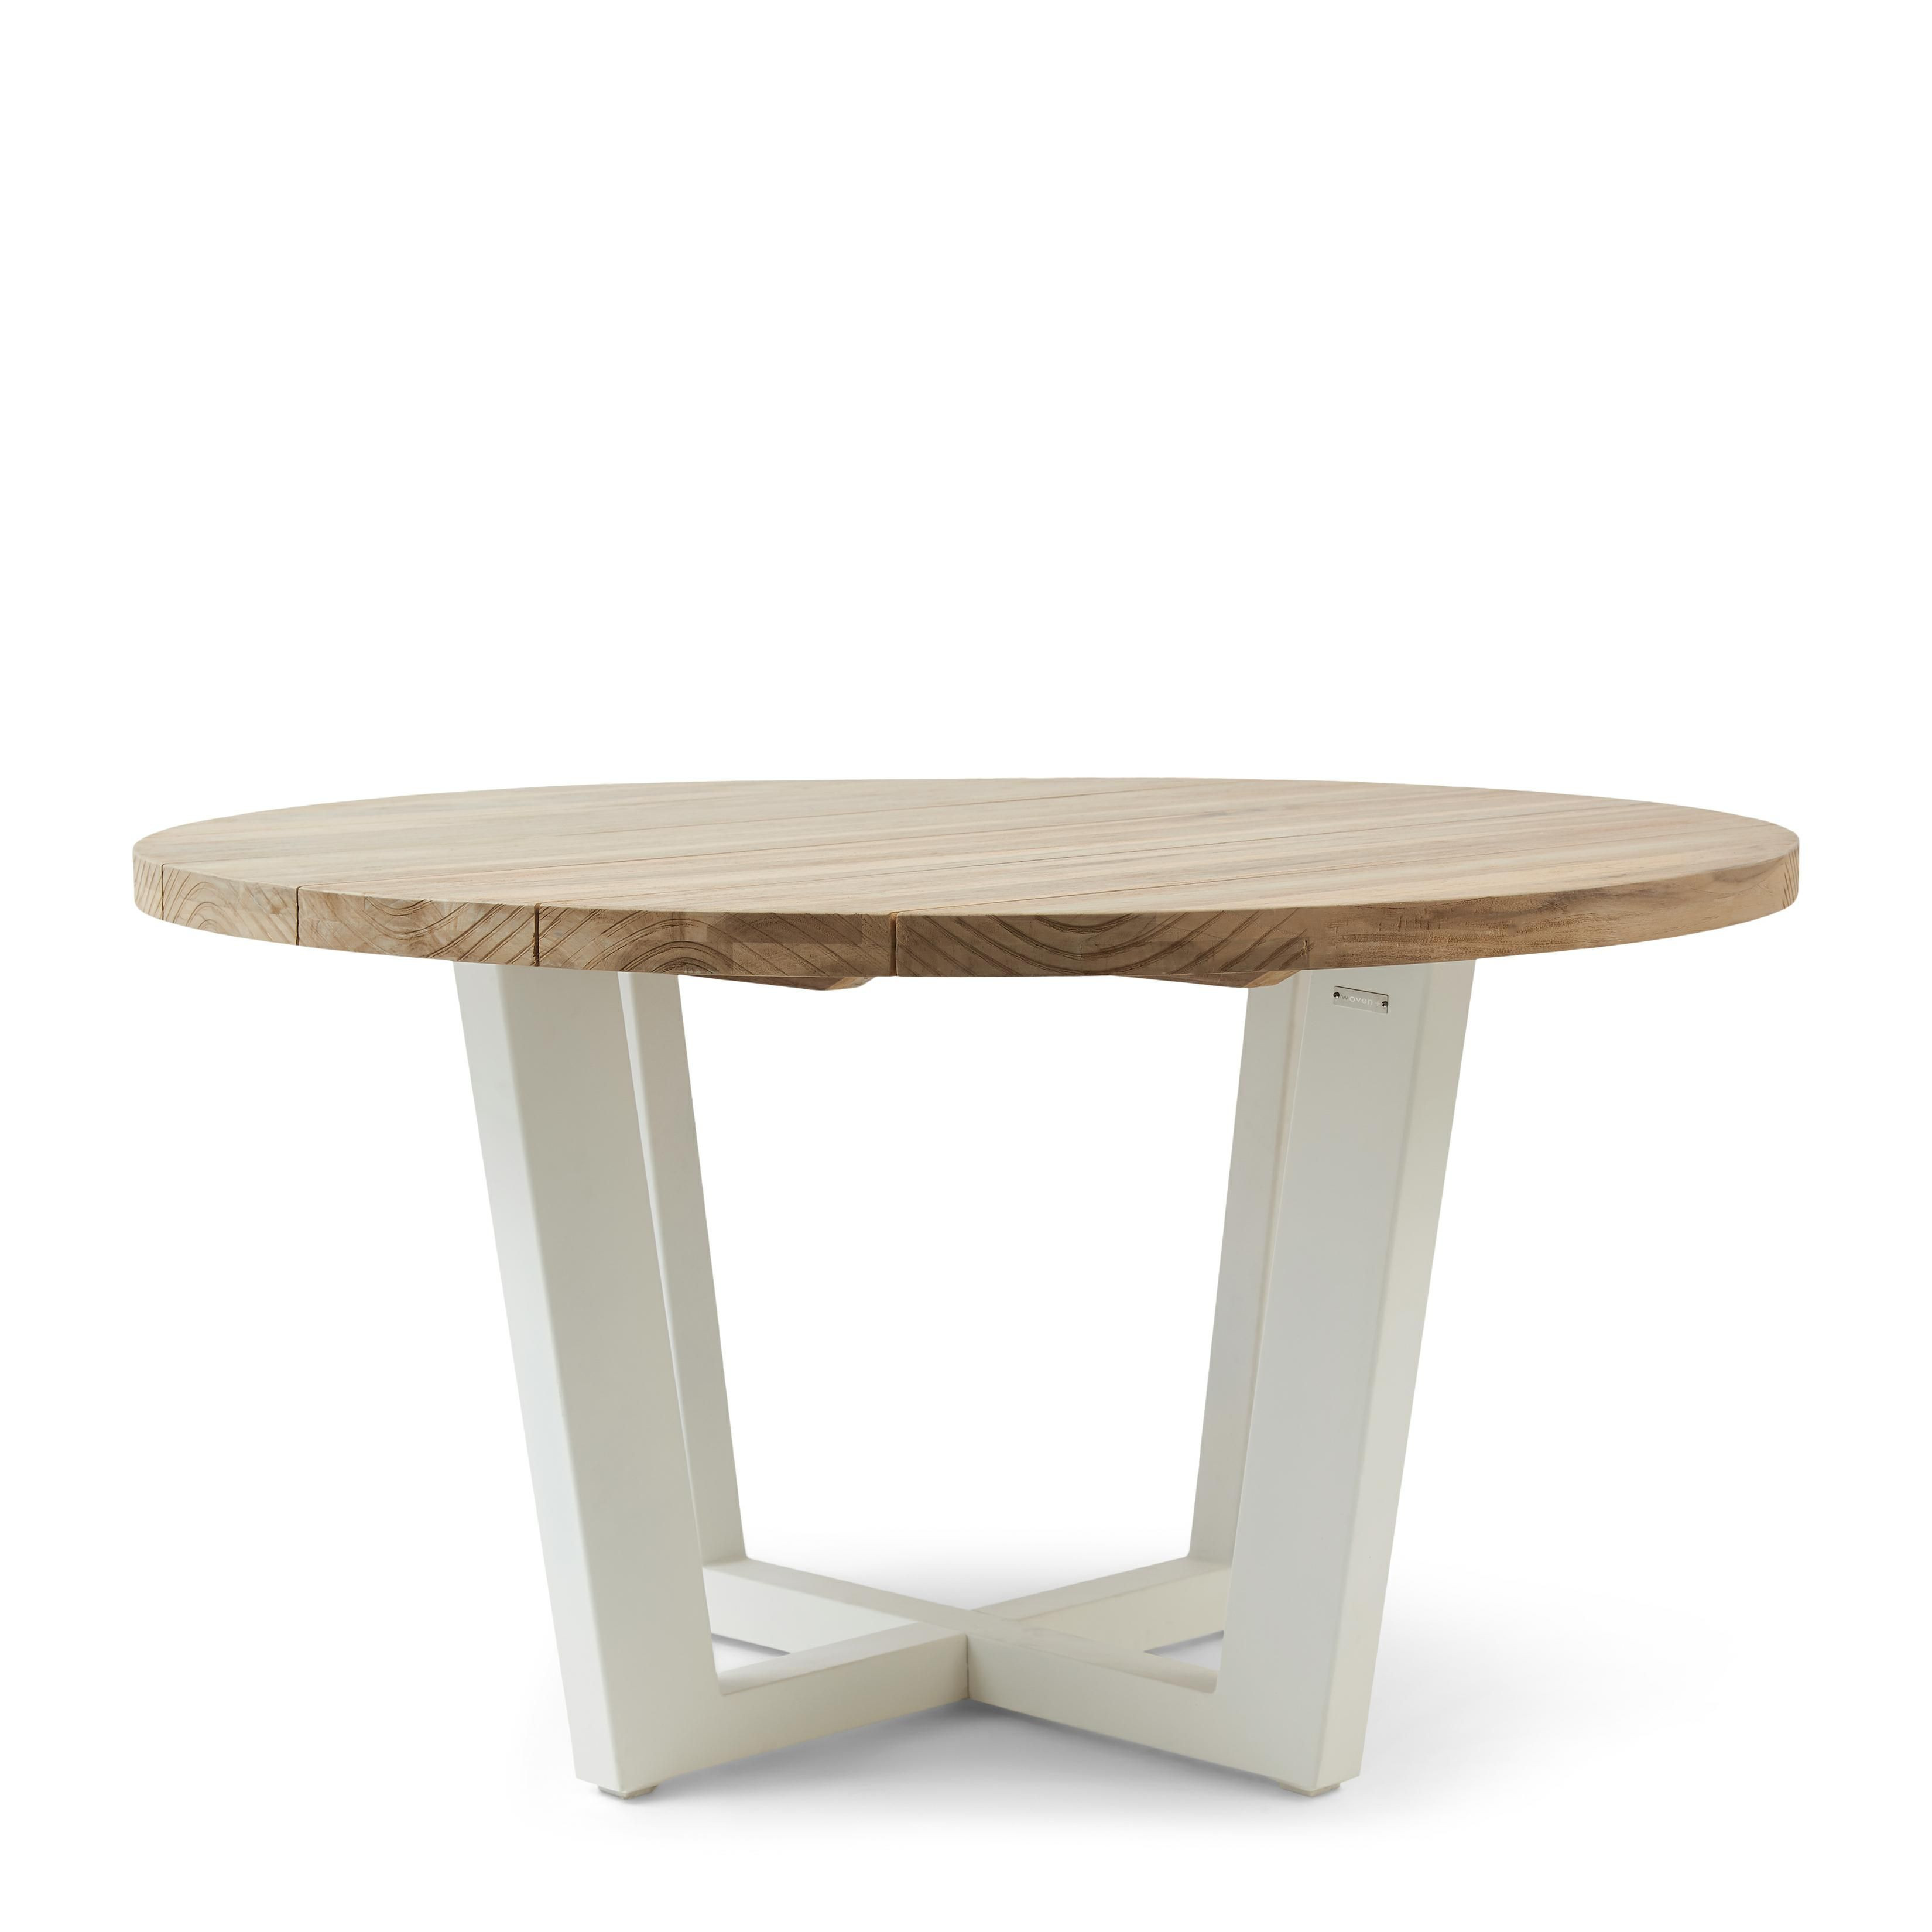 Bondi Beach Dining Table D140 / Rivièra Maison